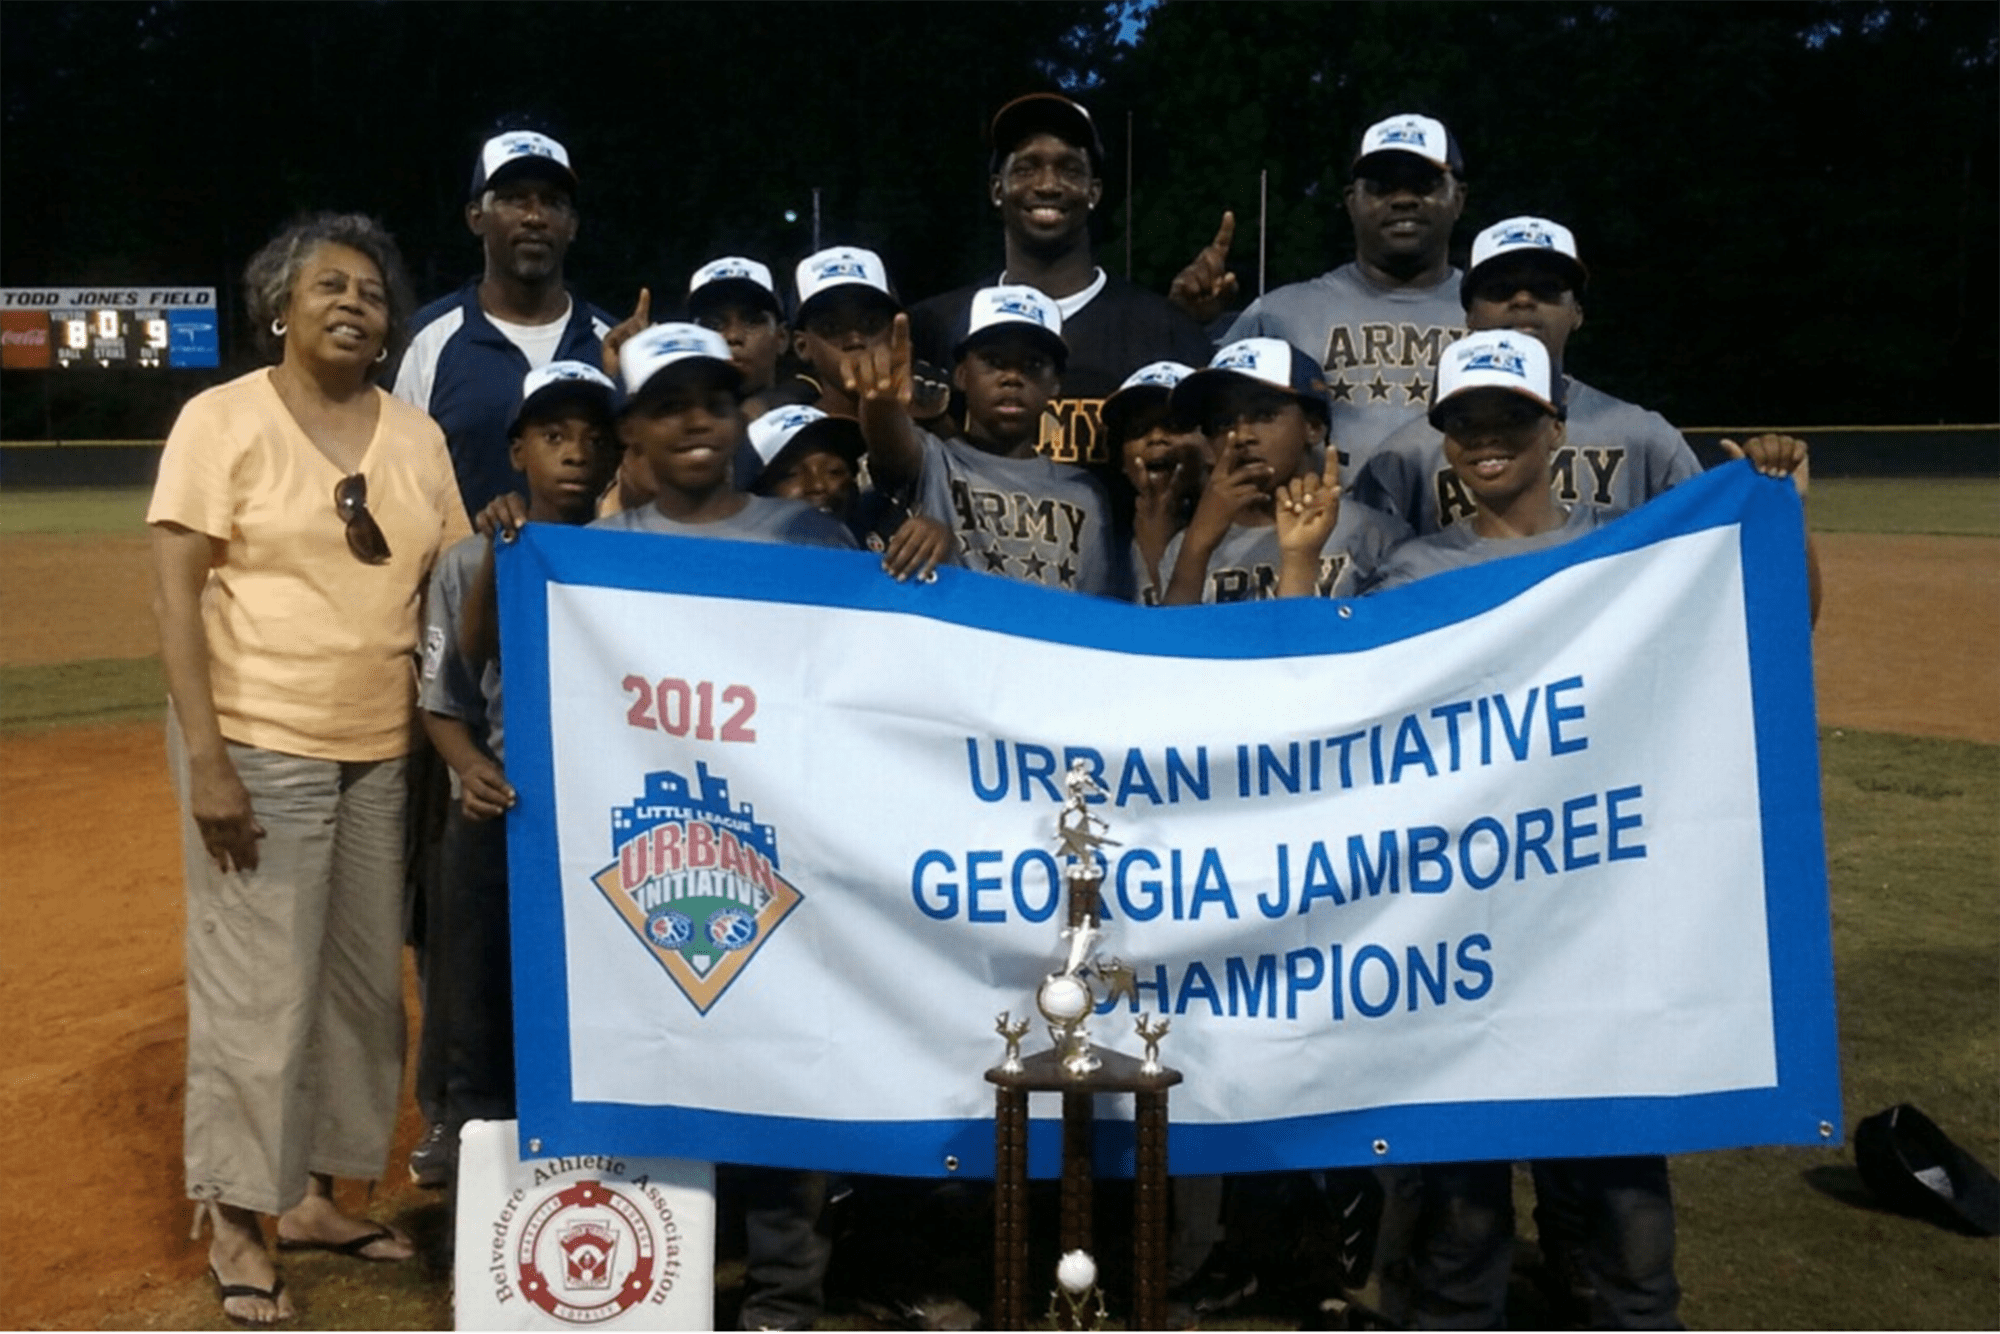 Carolyn Taggart (far left) joins the 2012 UI Georgia Jamboree winners